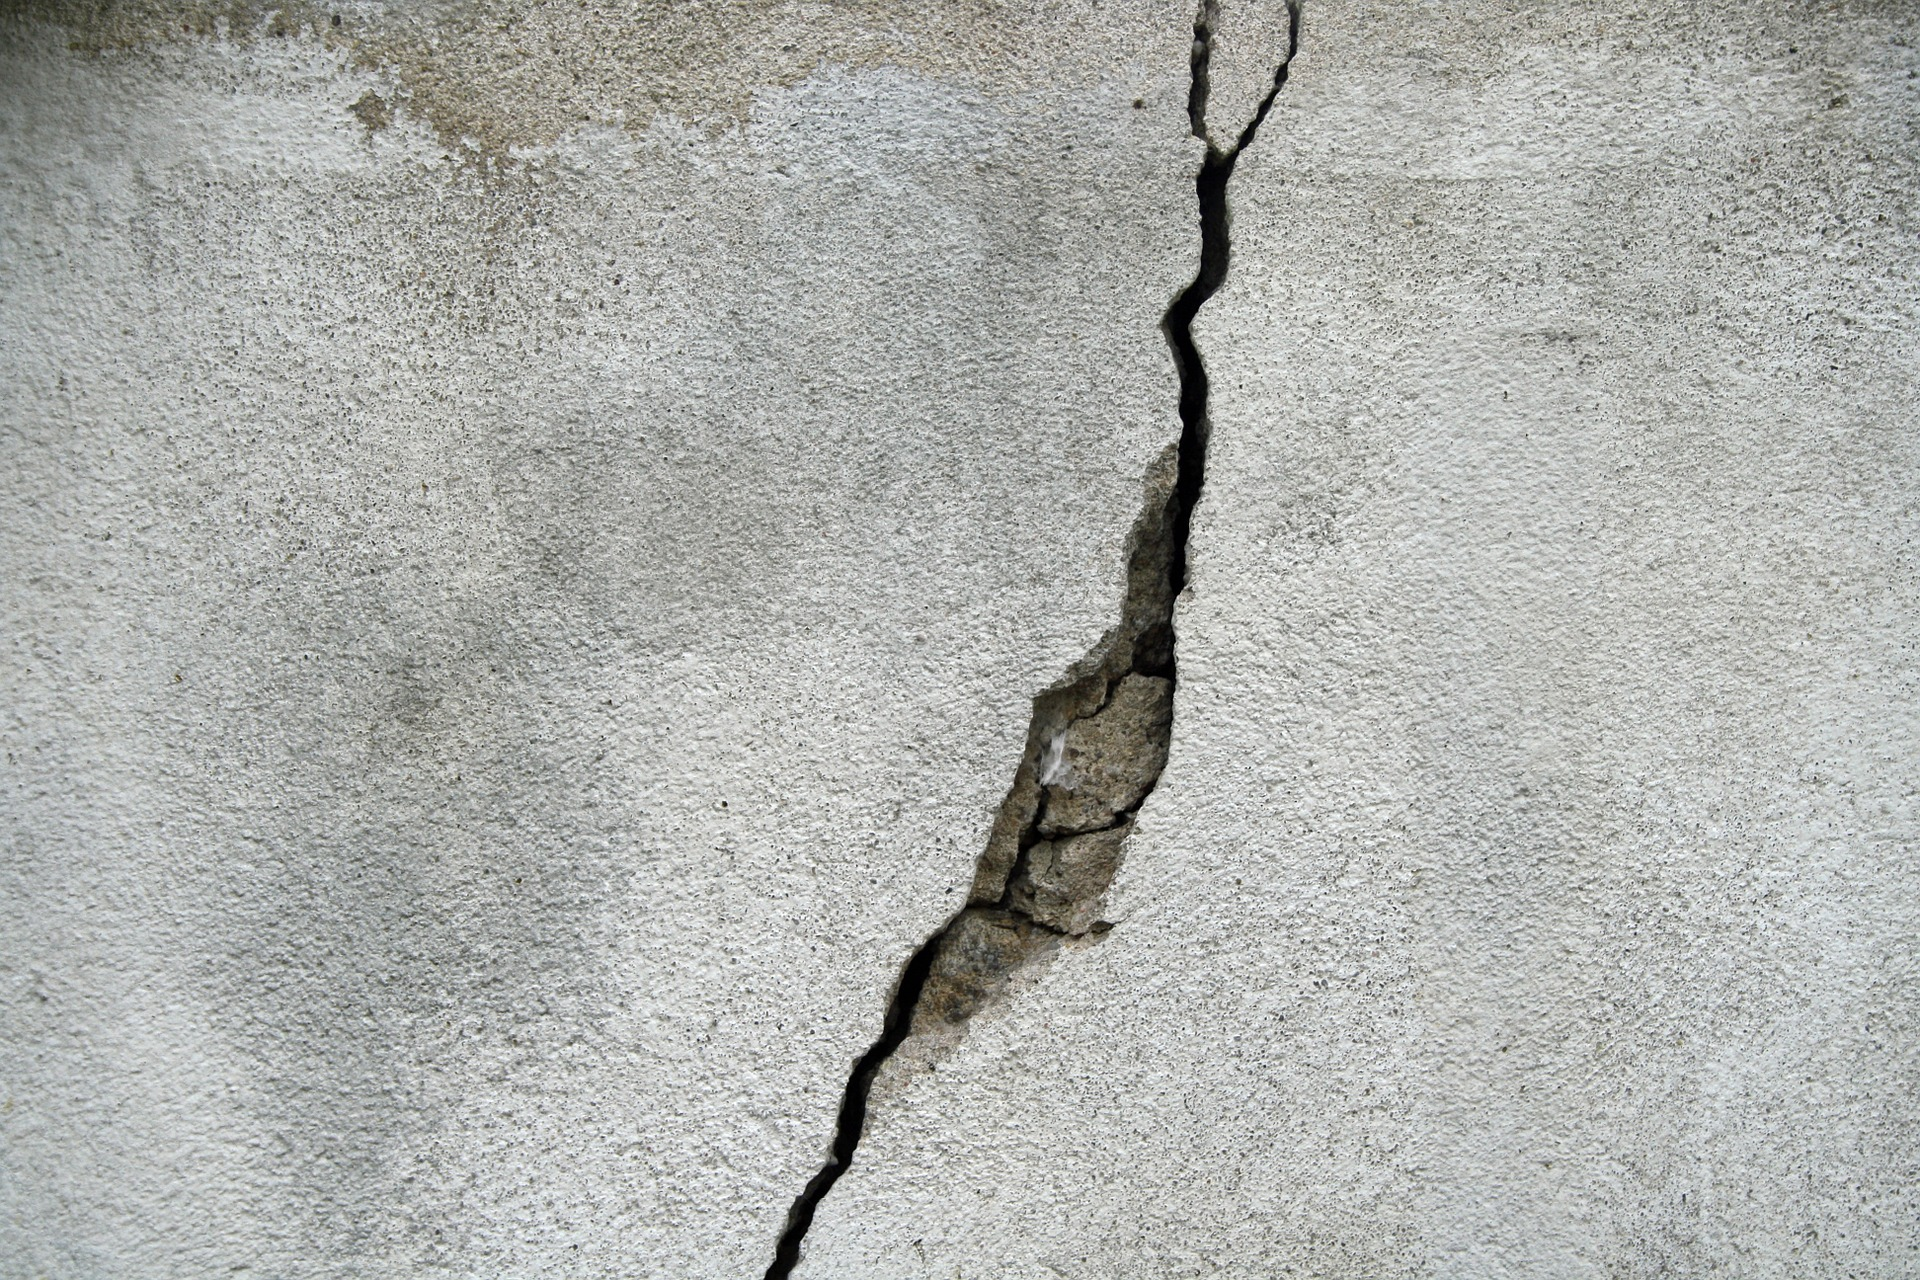 Basement Wall Crack in need of Repair in Providence, Rhode Island